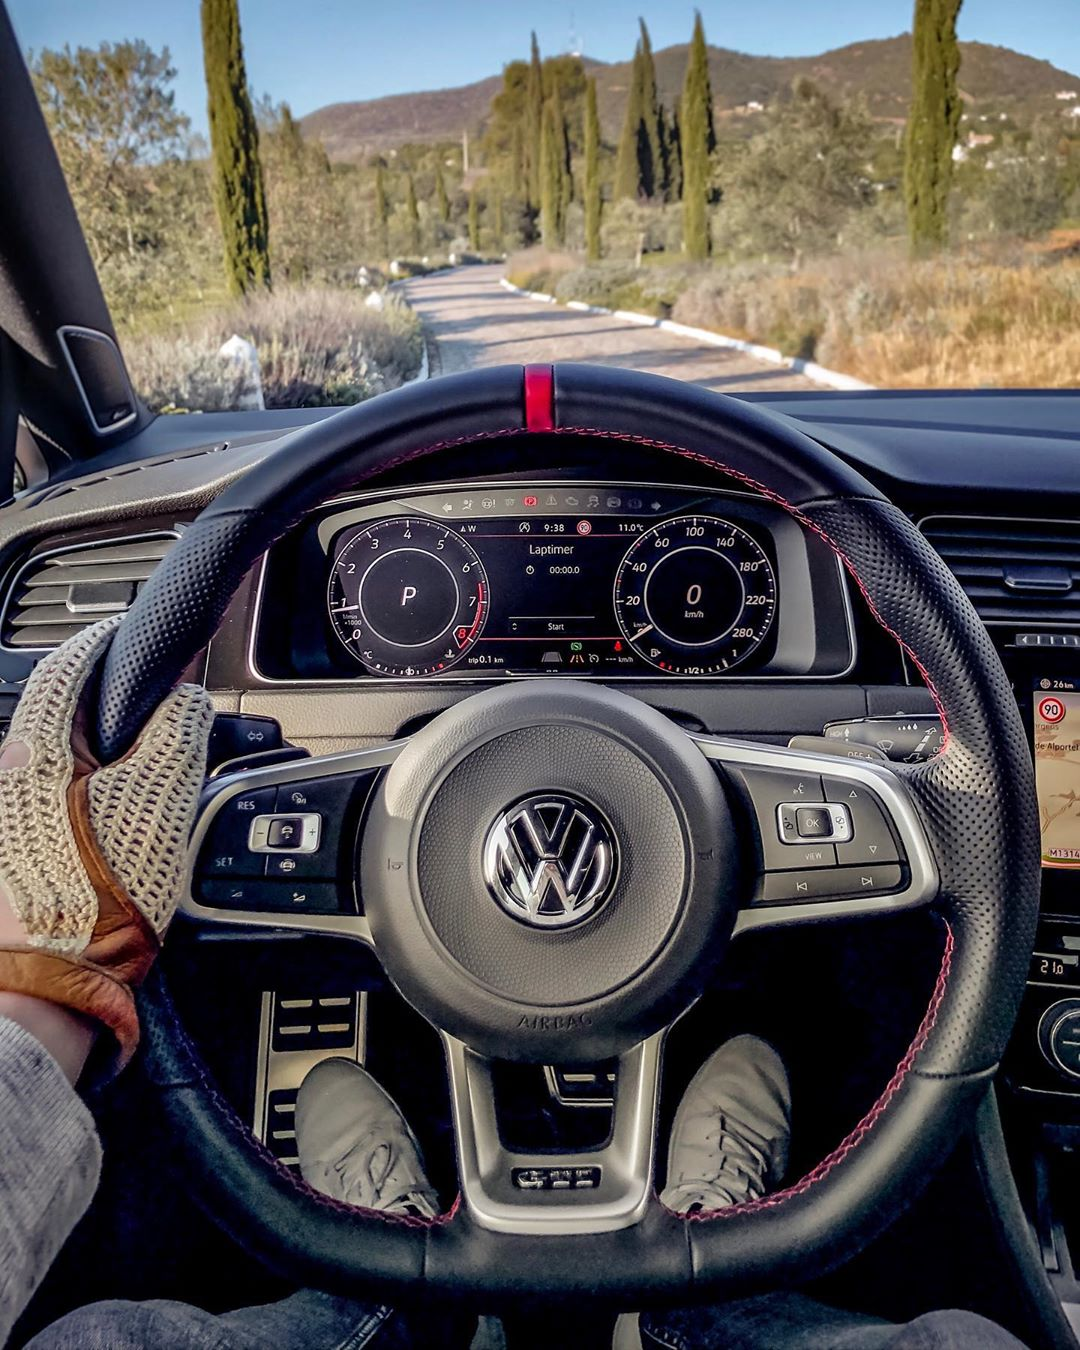 Looking forward to get that TCR on the German Autobahn落 #volkswagen #golfgti #golfgtitcr #gti #gtitcr #golf7gti #gticlubsport #automanntv #portugal